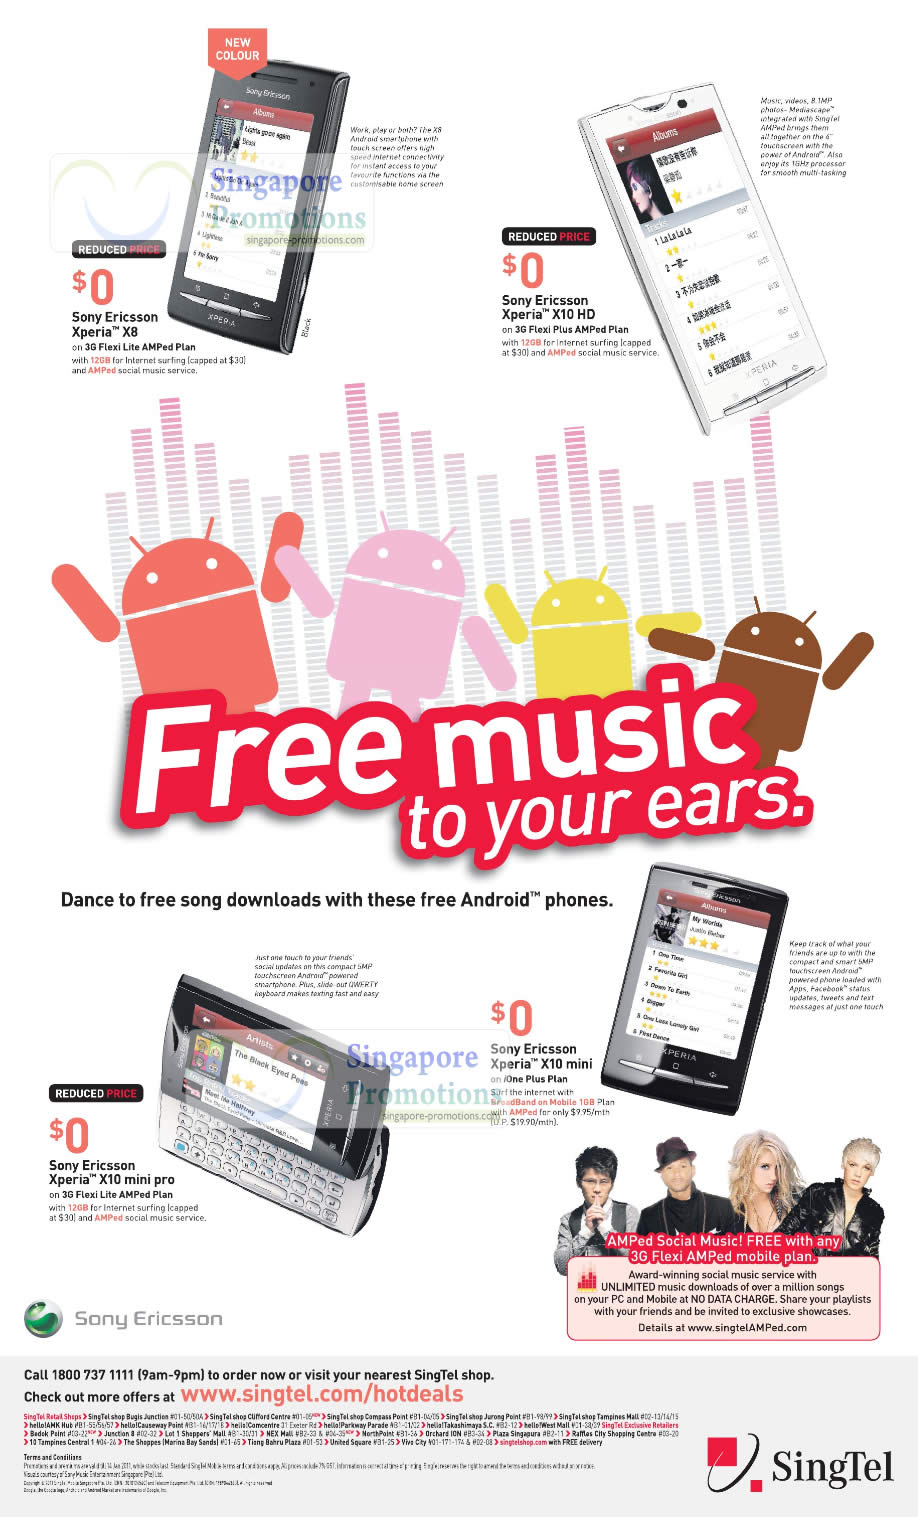 Singtel Singnet Broadband 8 January 2011 Price List - Sony Ericsson ...